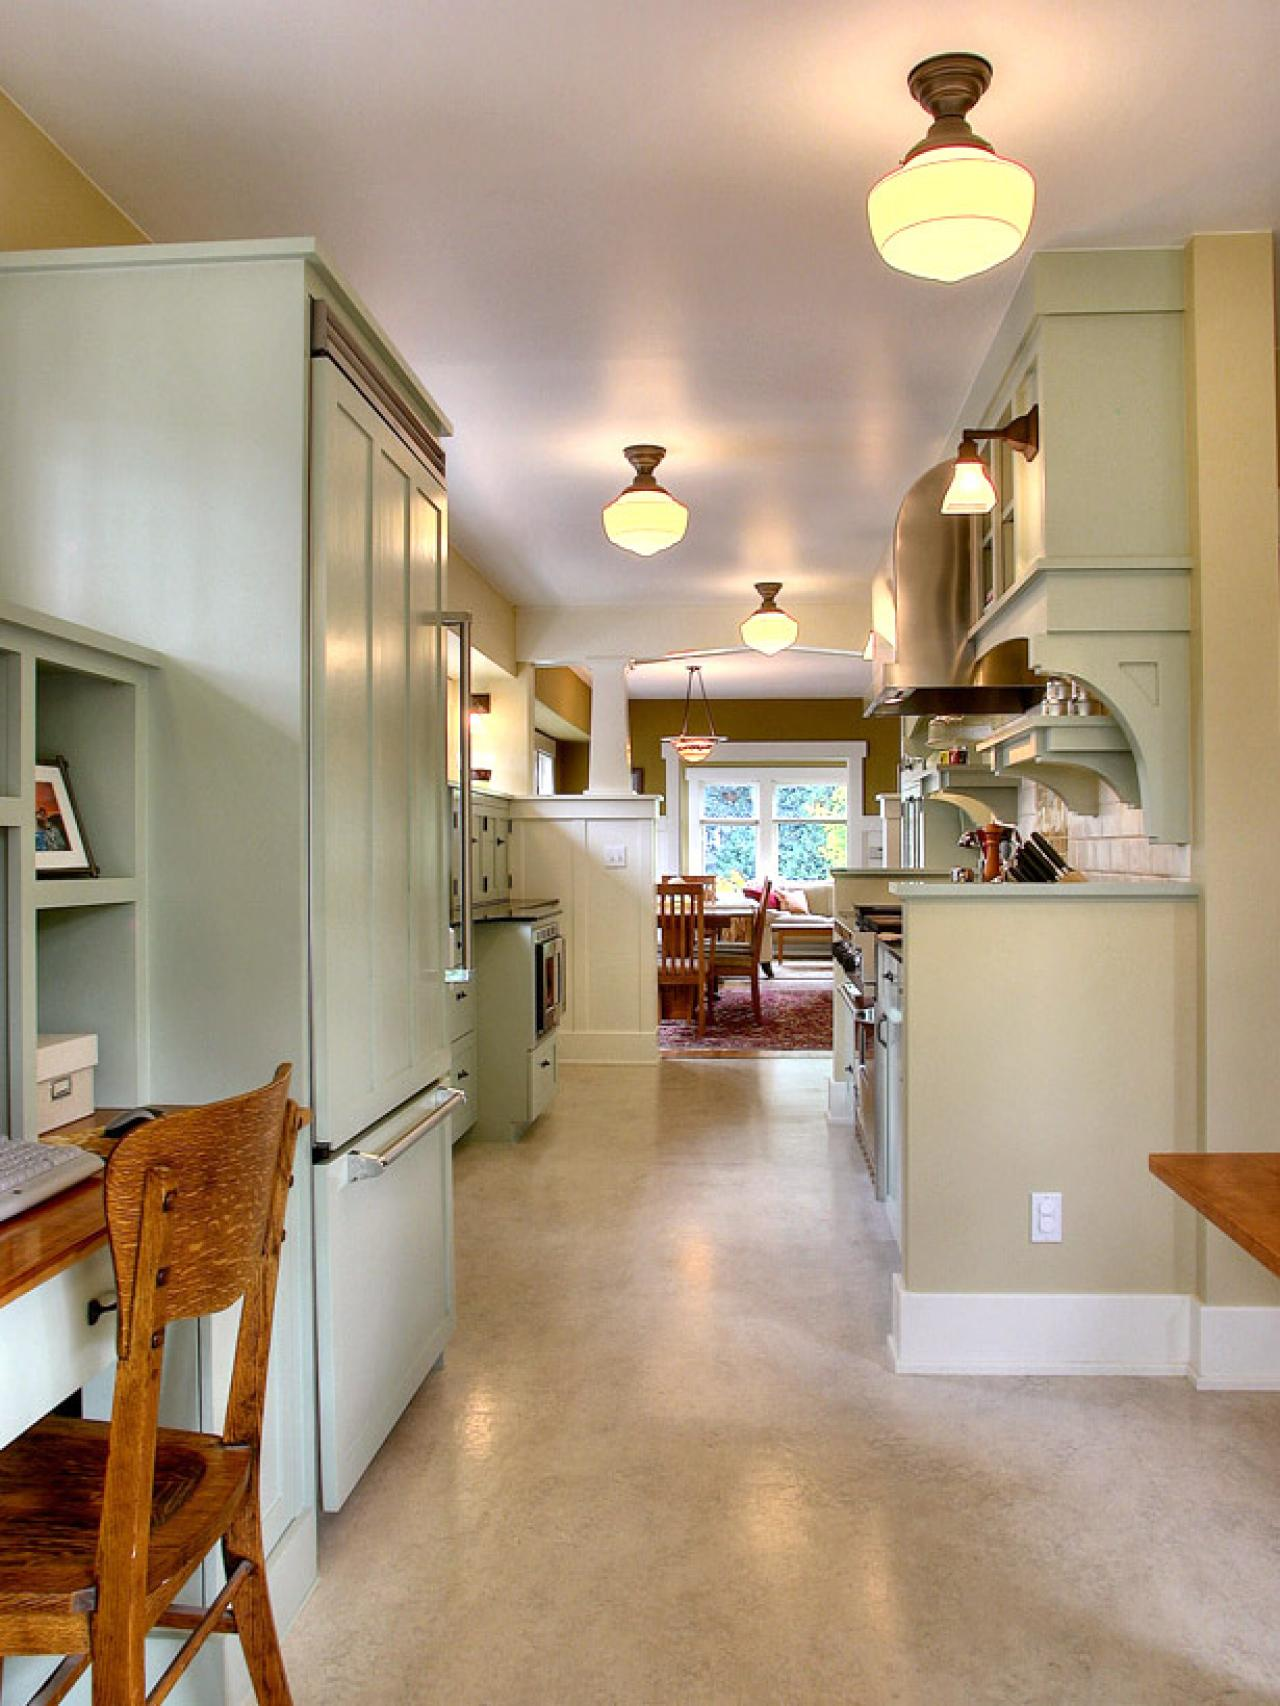 Great Ways For Lighting A Kitchen: 25 Ways To Remodel Your Craftsman Style Kitchen